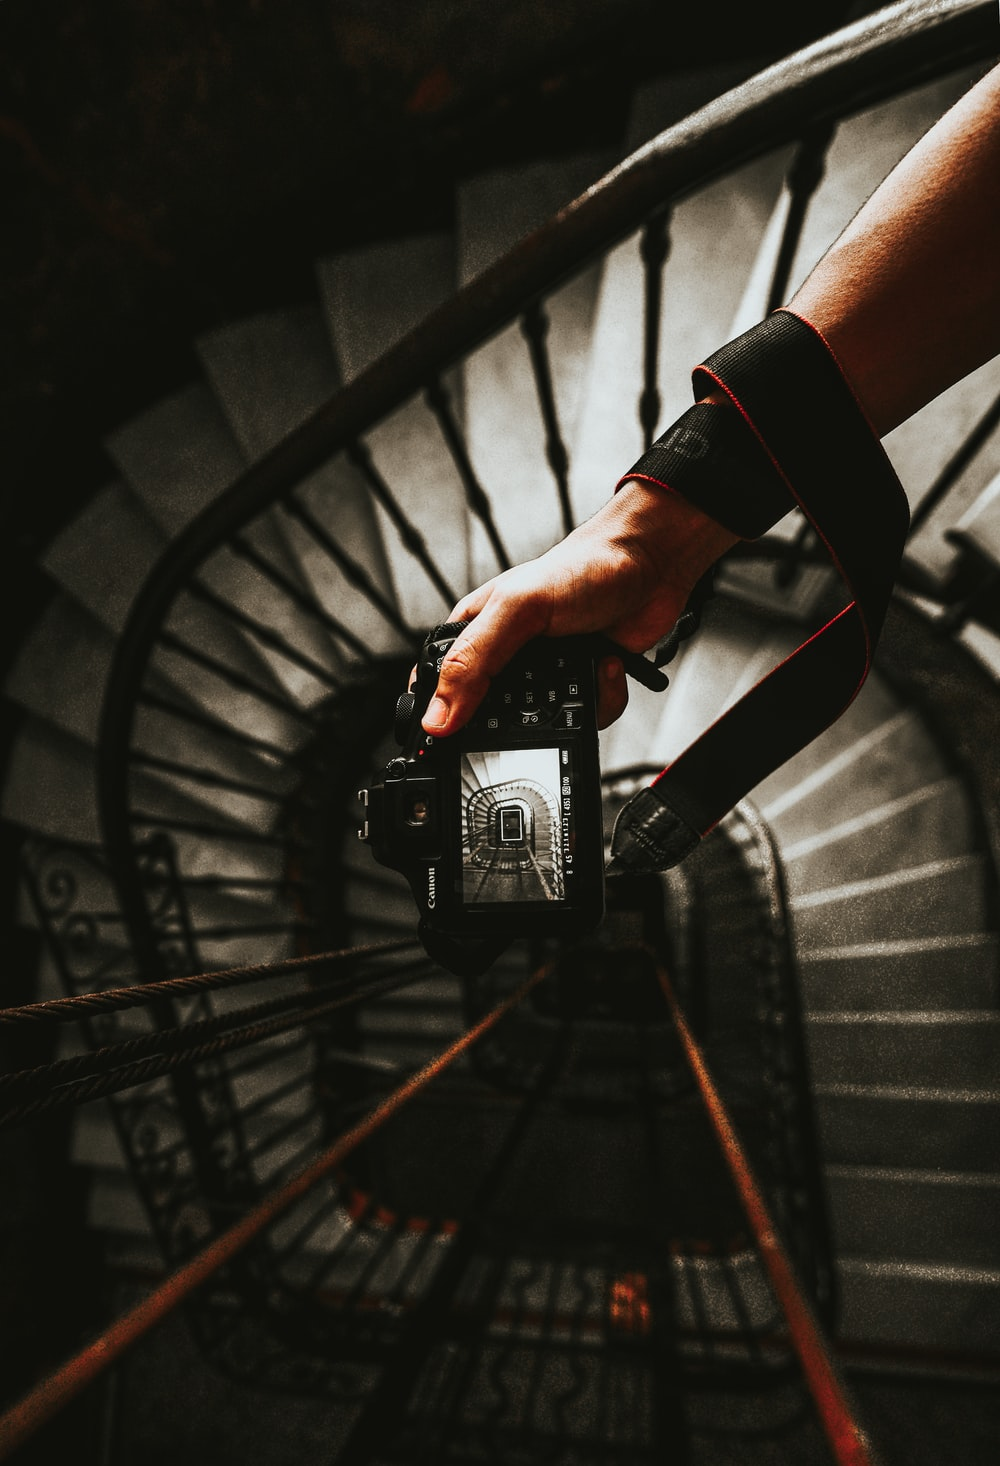 person holding black DSLR camera taking photo of spiral stairs